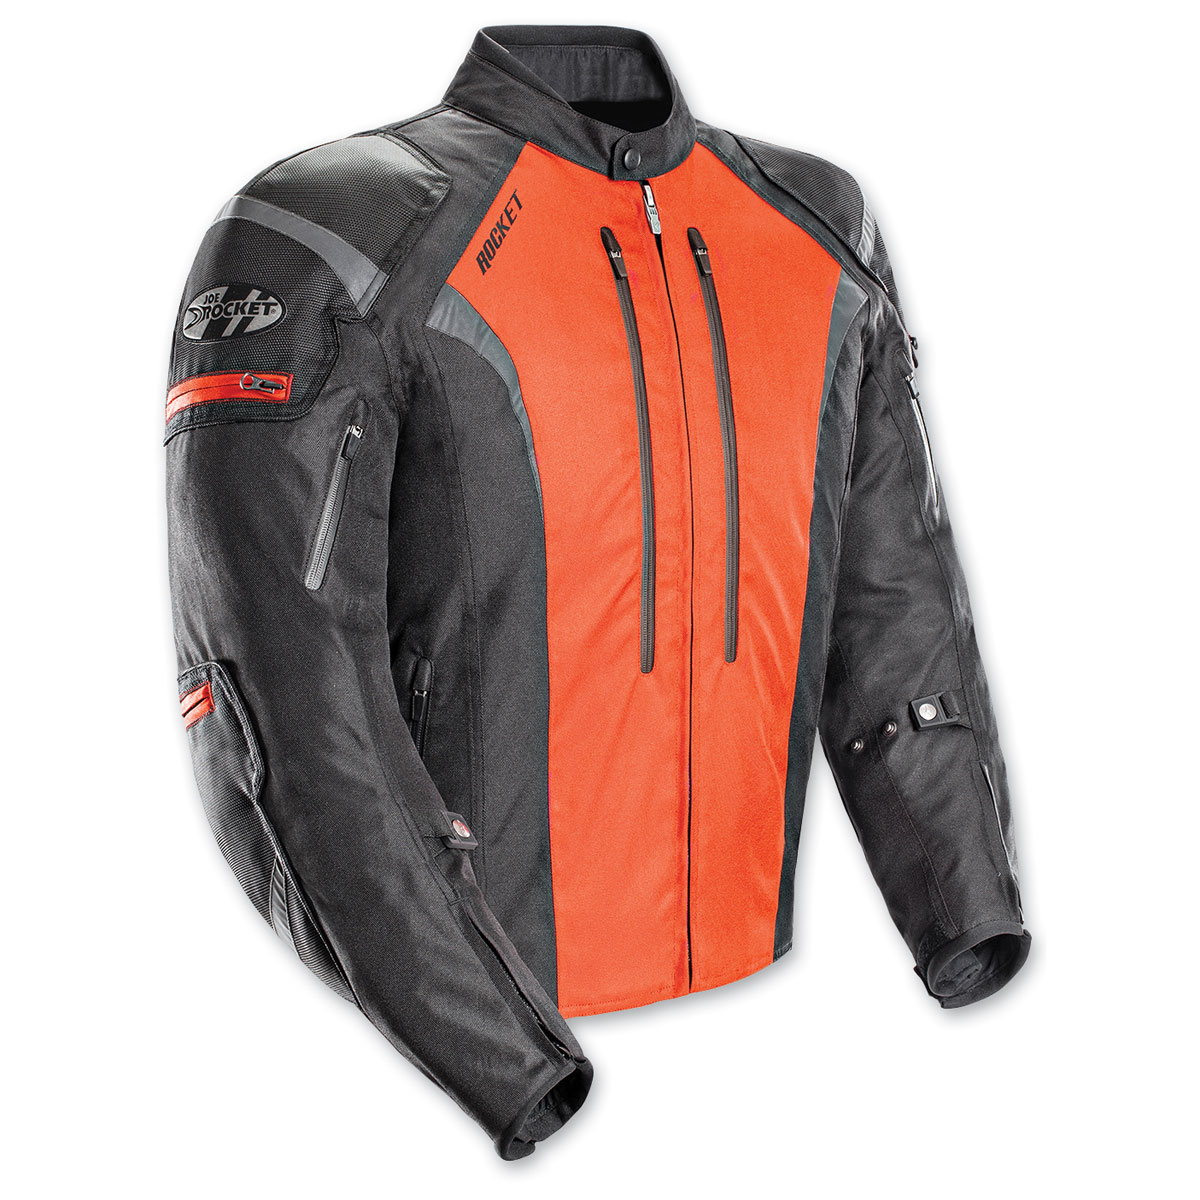 Joe Rocket Men's Atomic 5.0 Orange Jacket